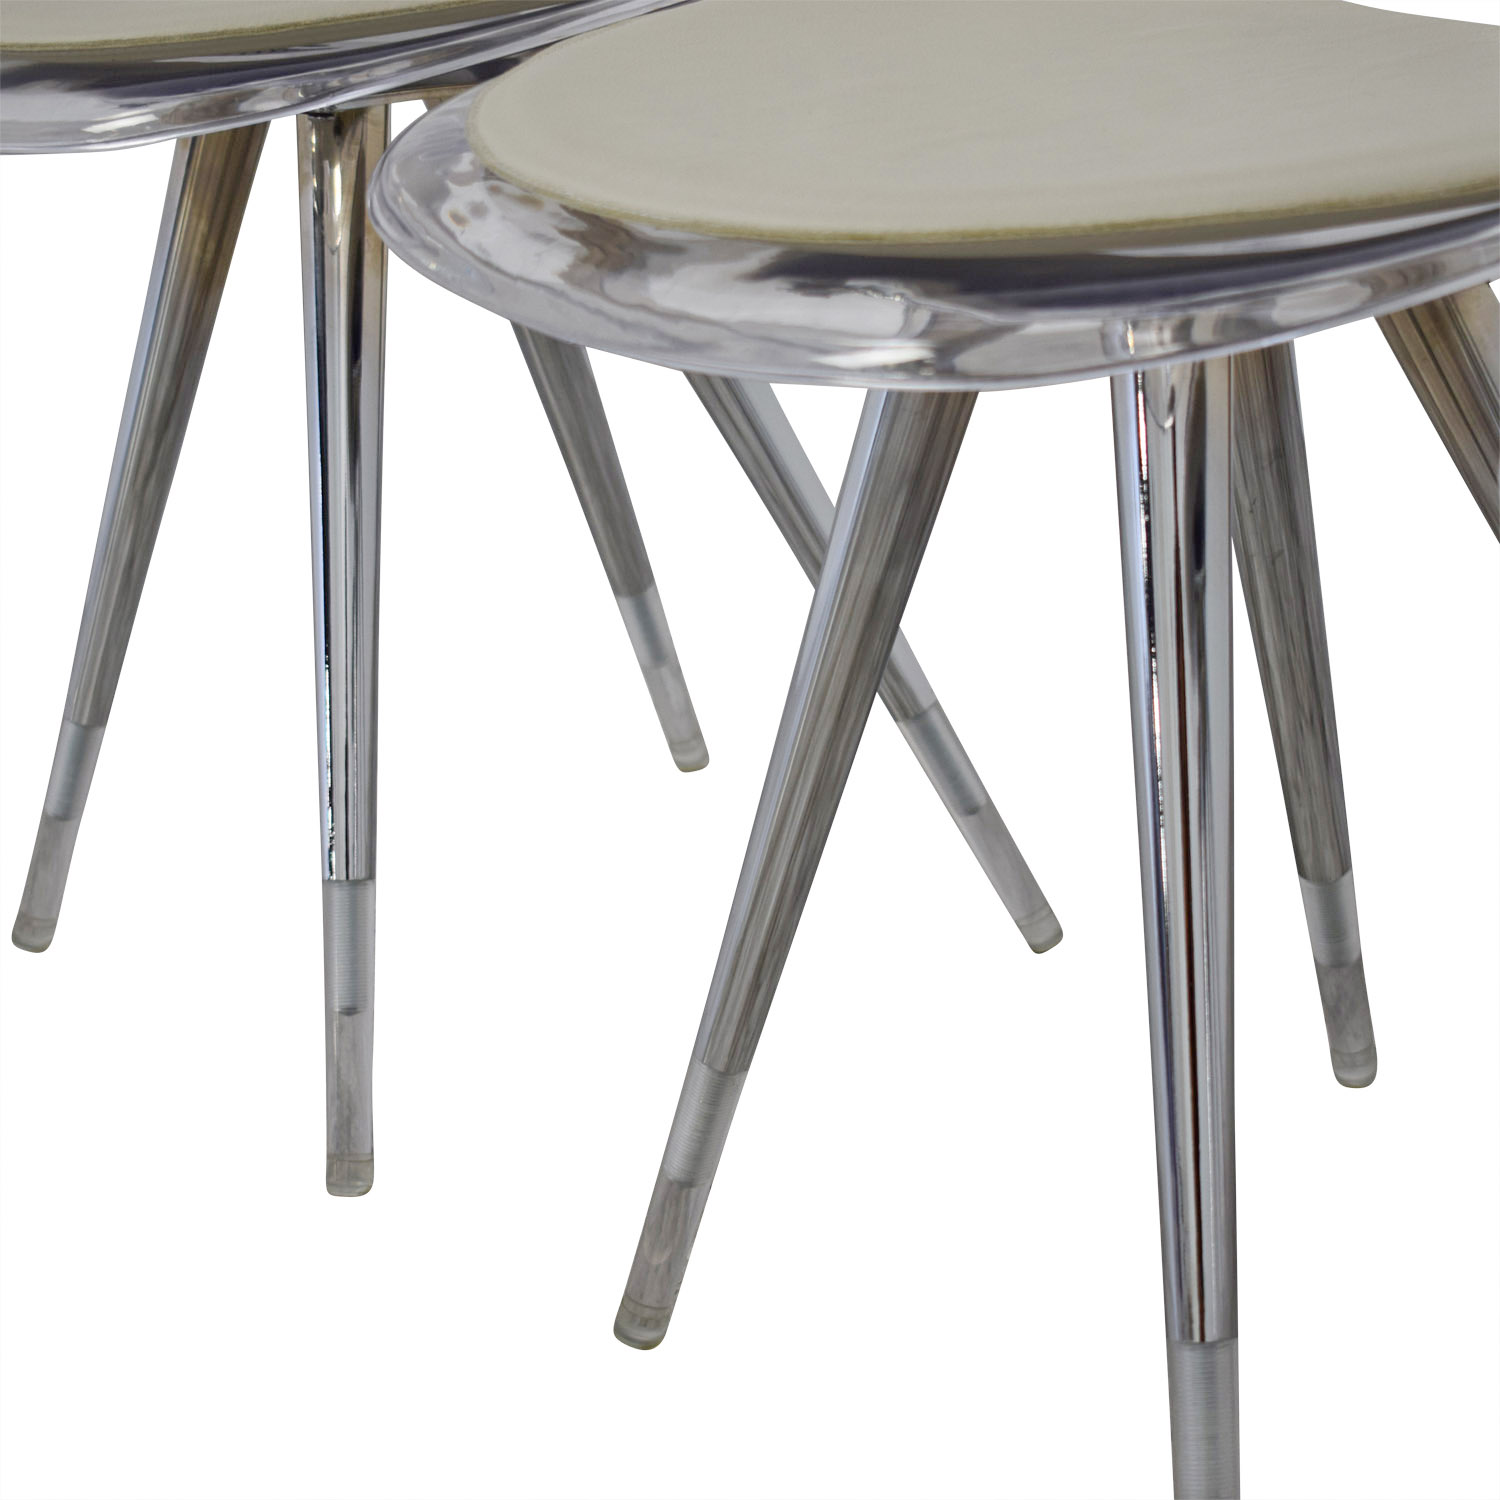 Cite NYC Lucite Dining Chairs with Custom Cushions Cite NYC